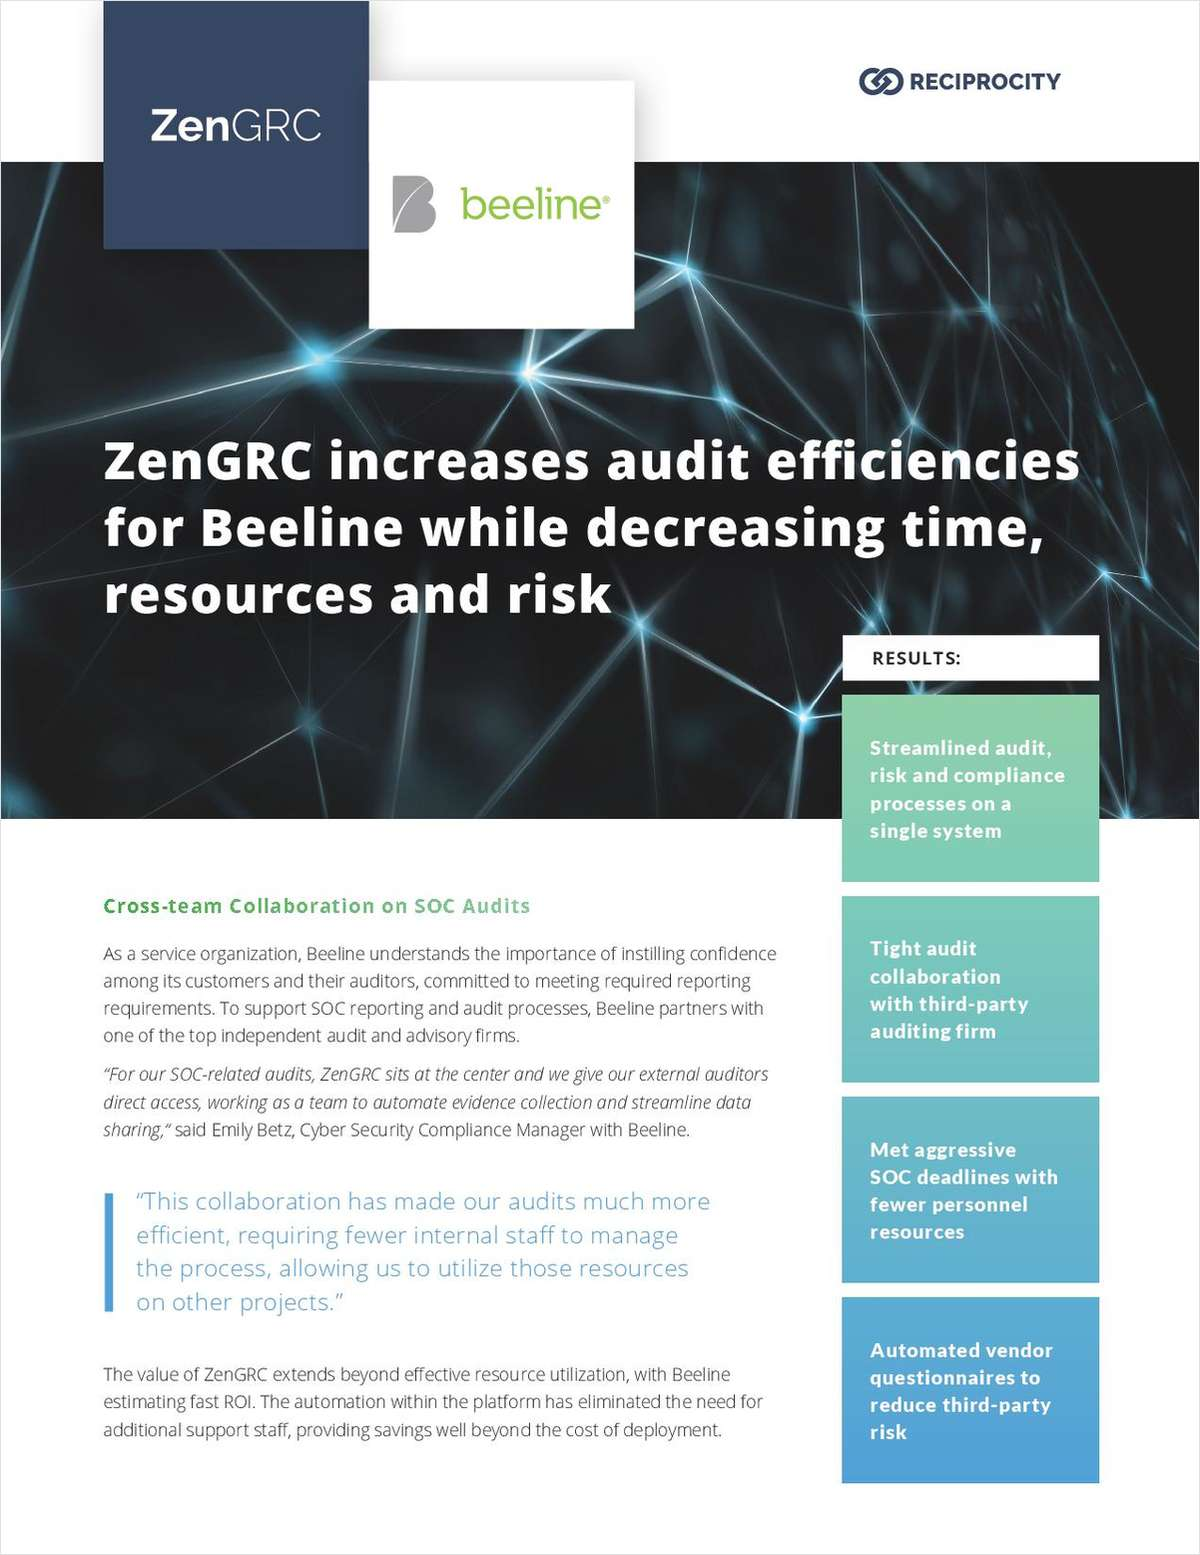 ZenGRC Increases Audit Efficiencies for Beeline While Decreasing, Time, Resources and Risk